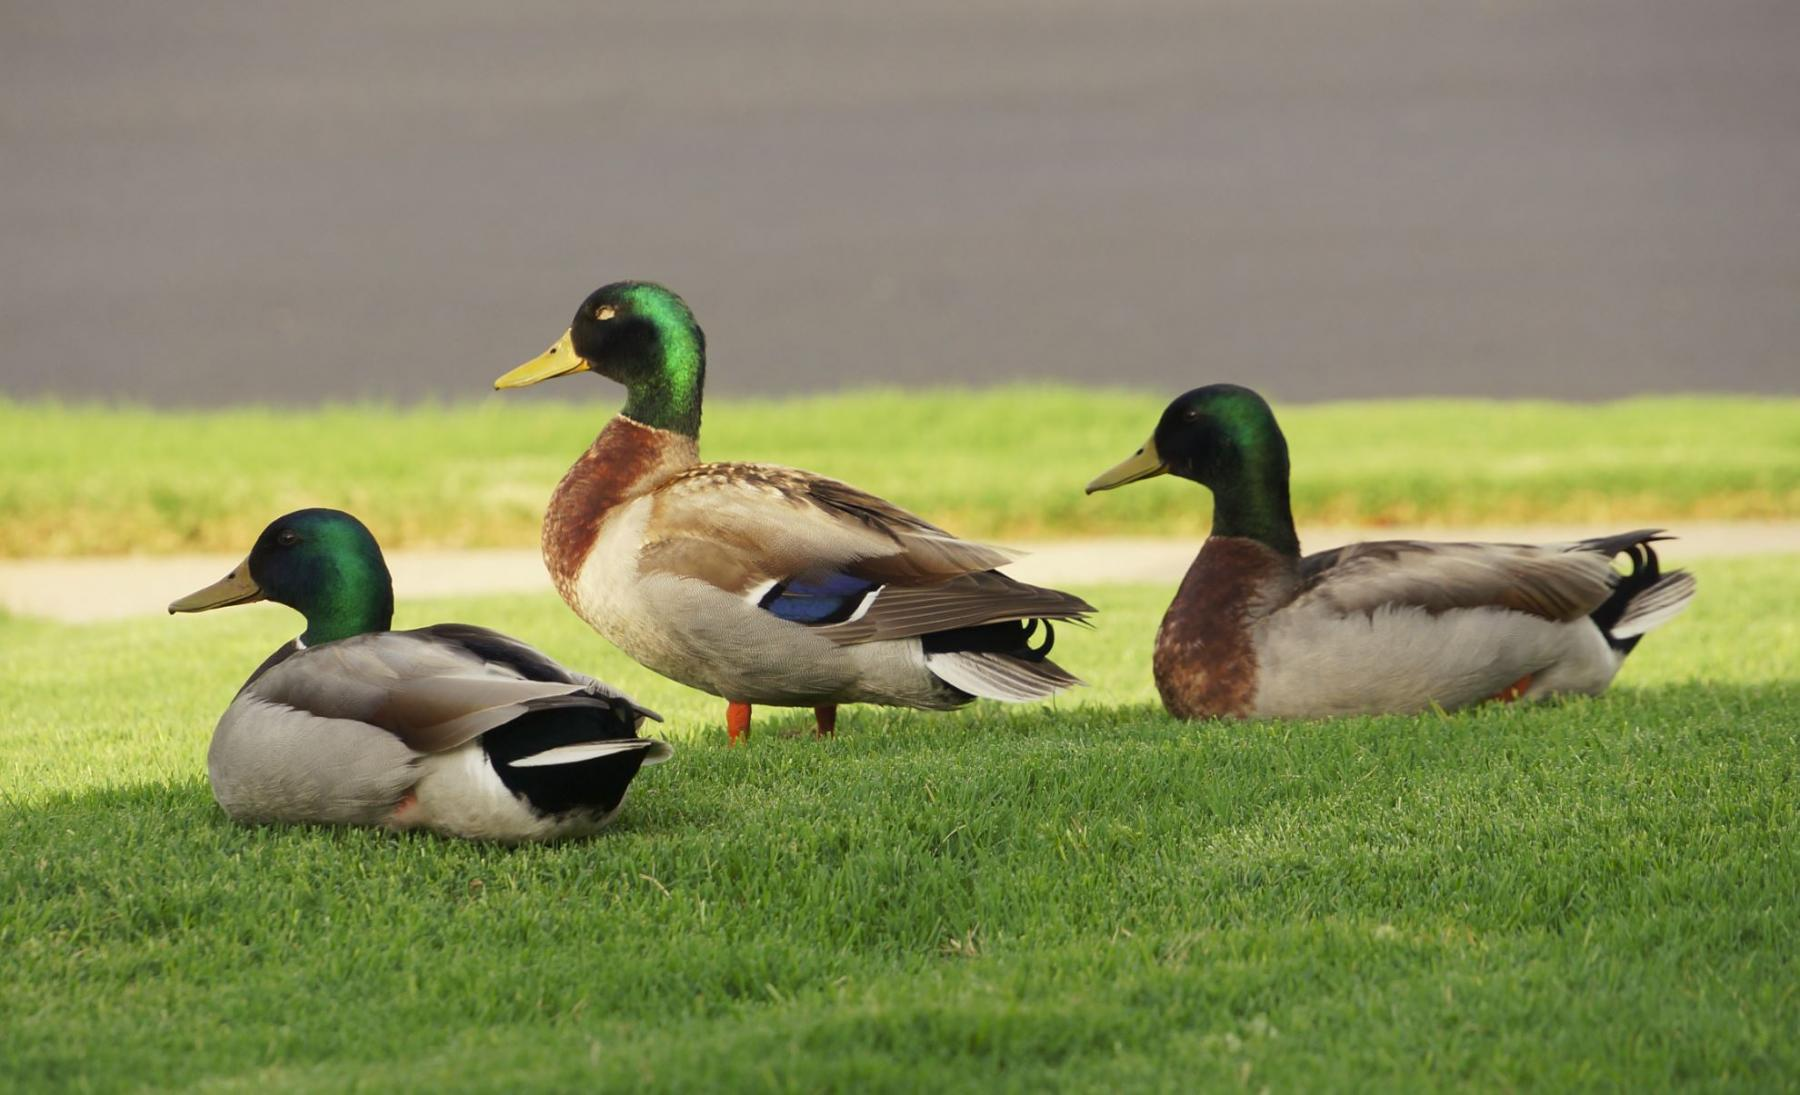 Ducks on My Front Lawn!